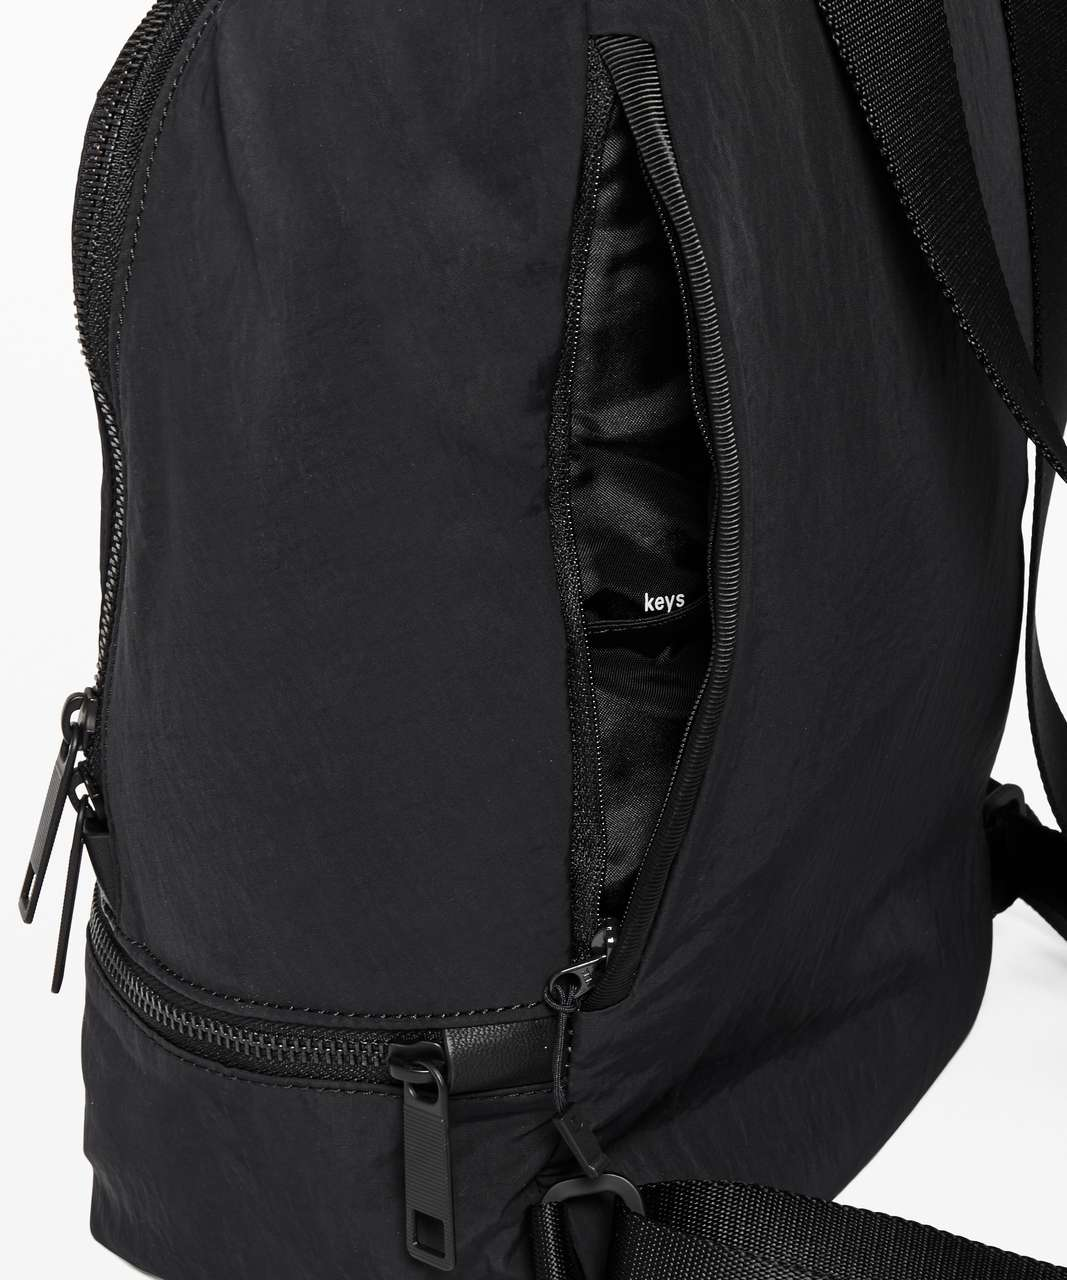 Lululemon City Adventurer Backpack *Mini 12L - Black